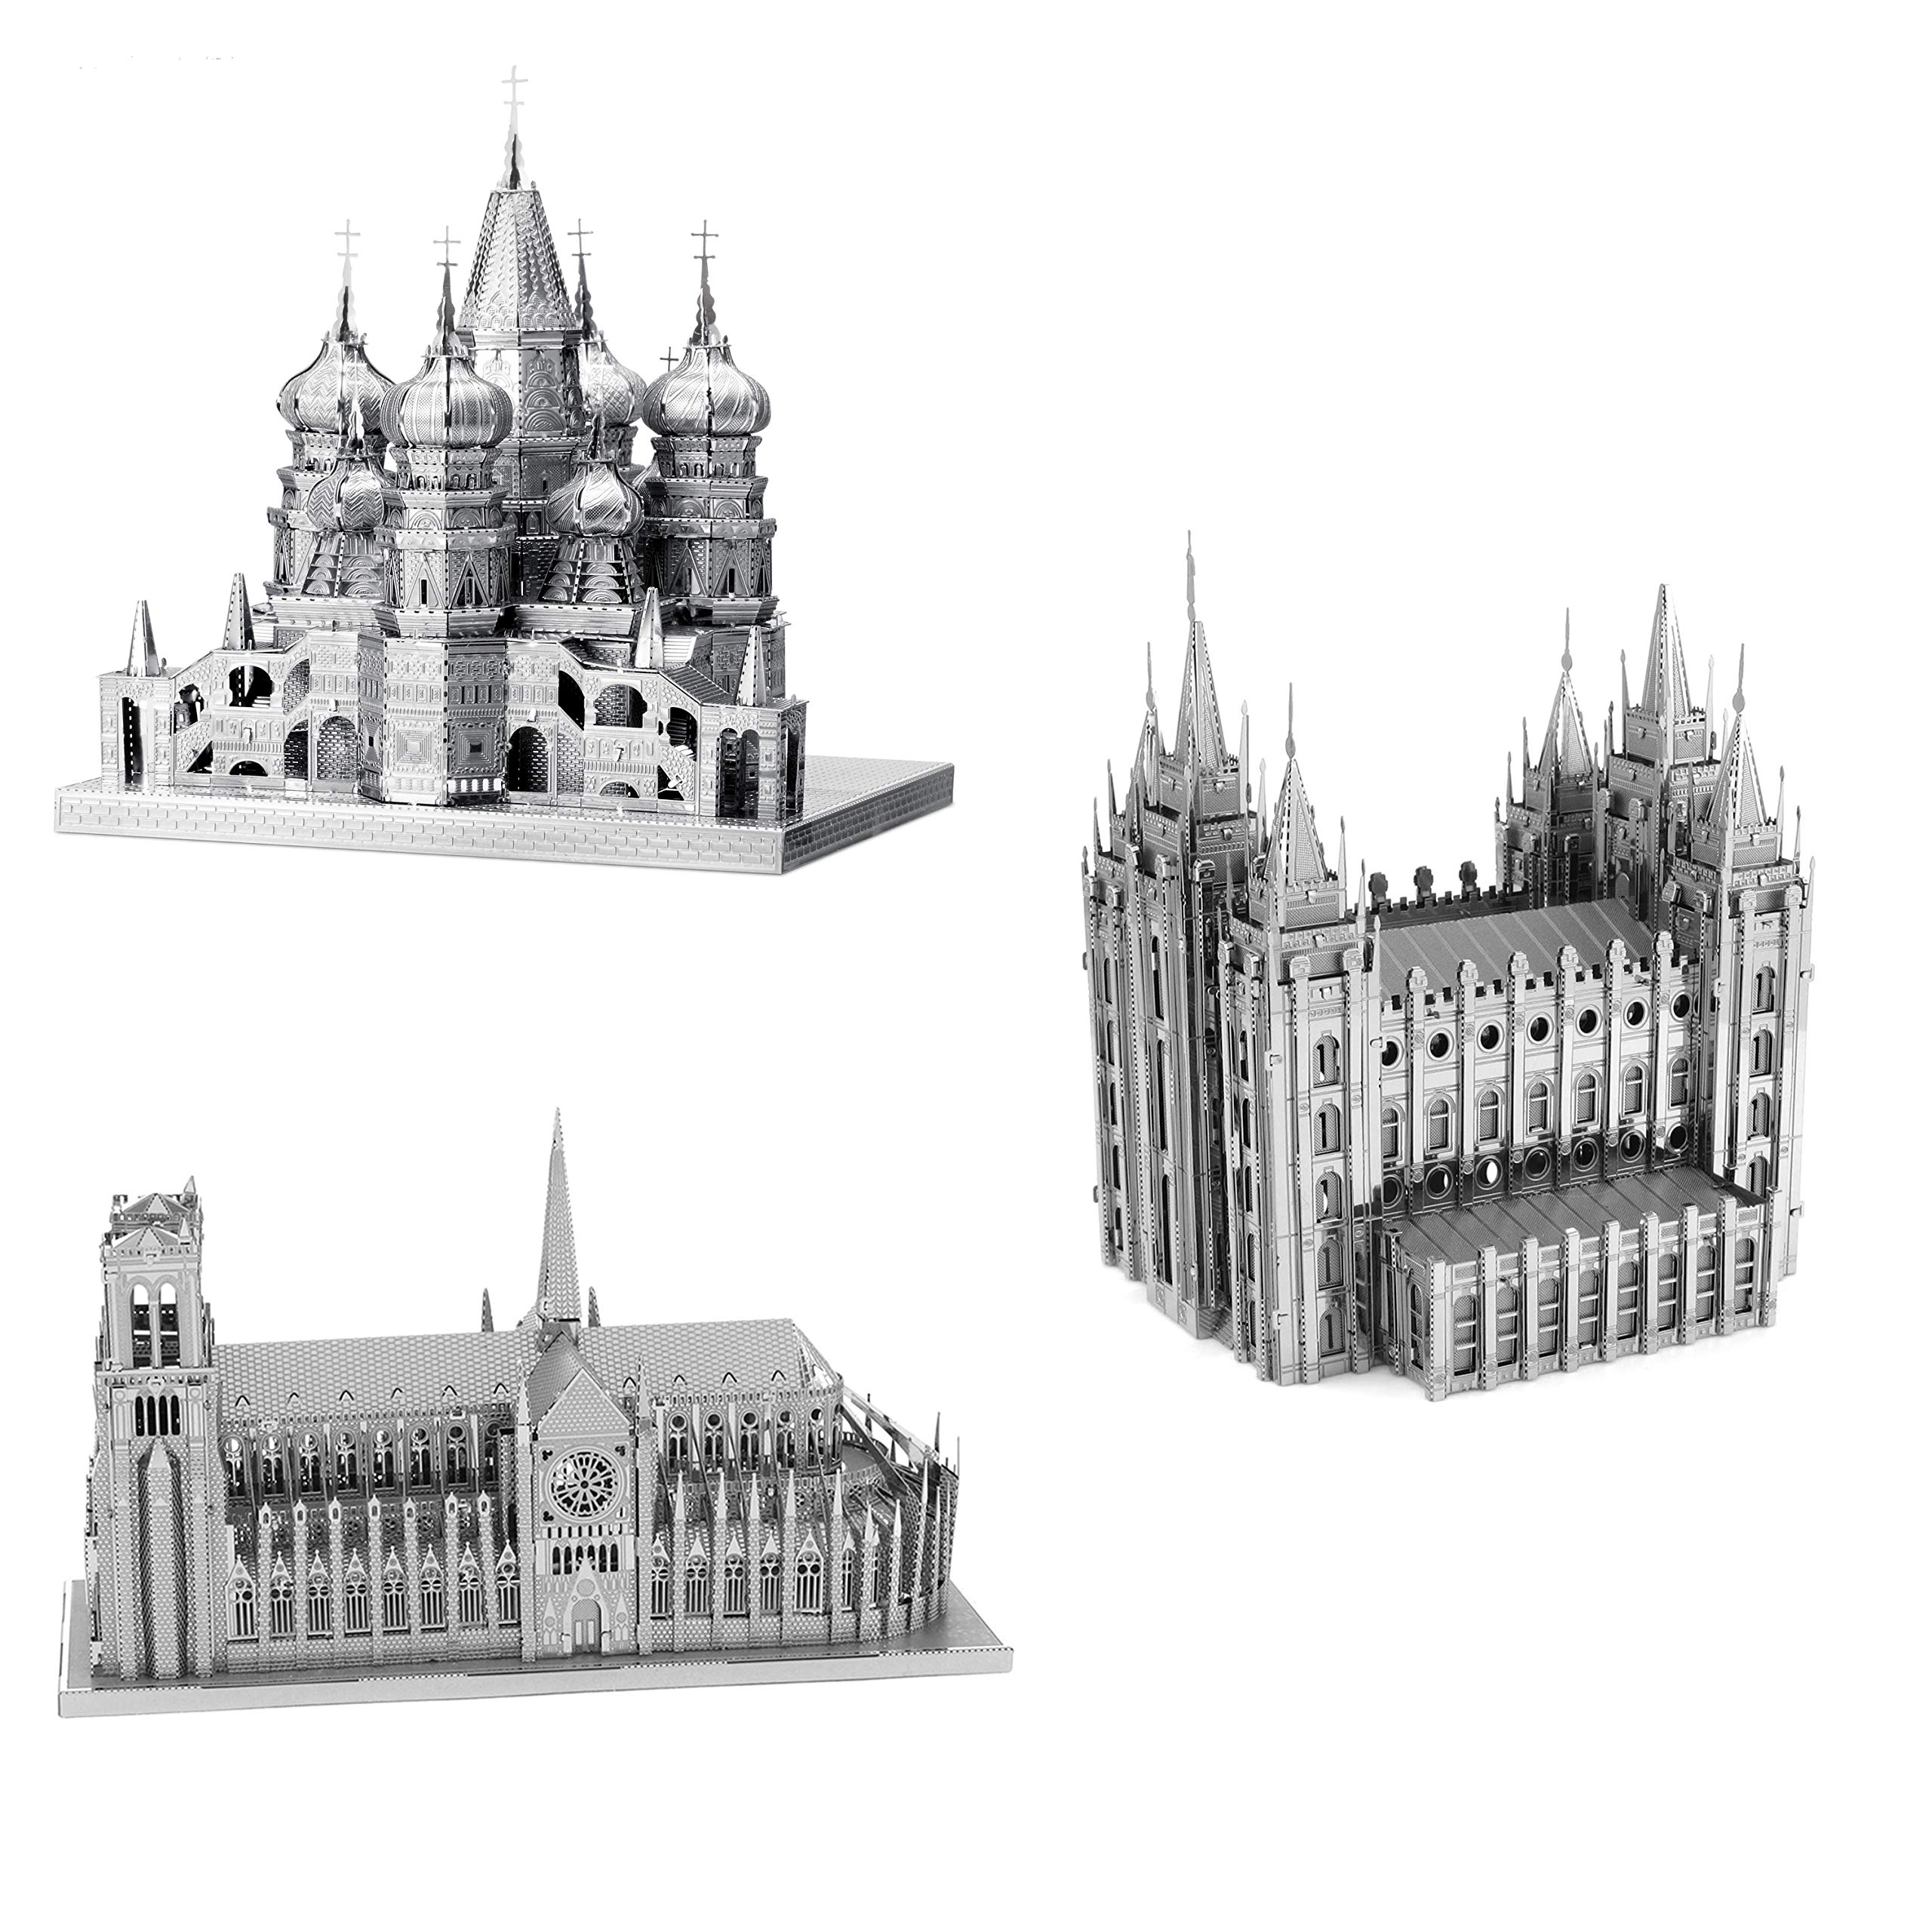 Fascinations ICONX 3D Metal Model Kits Set of 3 - St Basil's Cathedral - Notre Dame Cathedral - Salt Lake City Temple